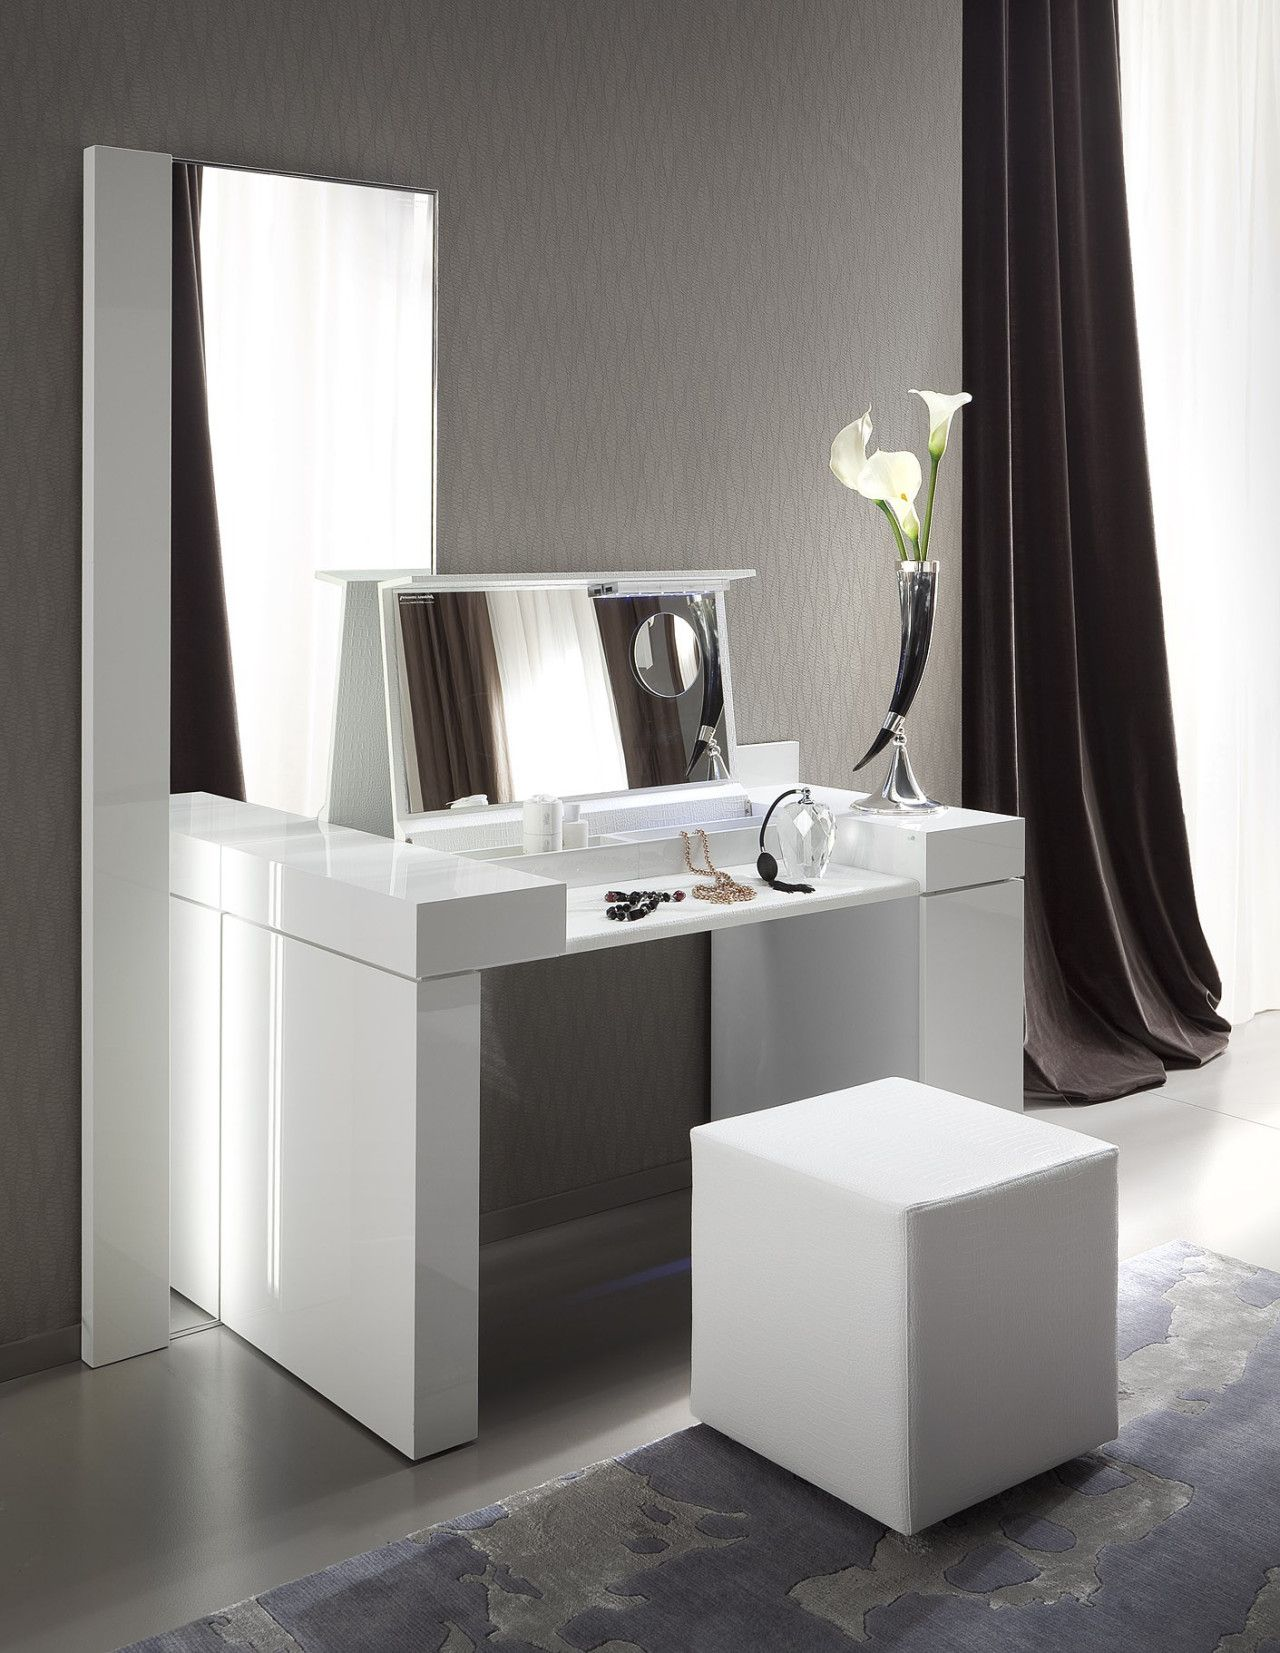 Etonnant Furniture Decoration Interior Modern White Dressing Table With Small White  Single Pouf As Well As Sweet White Flower With Glass Vase Also Sweet Dark   ...